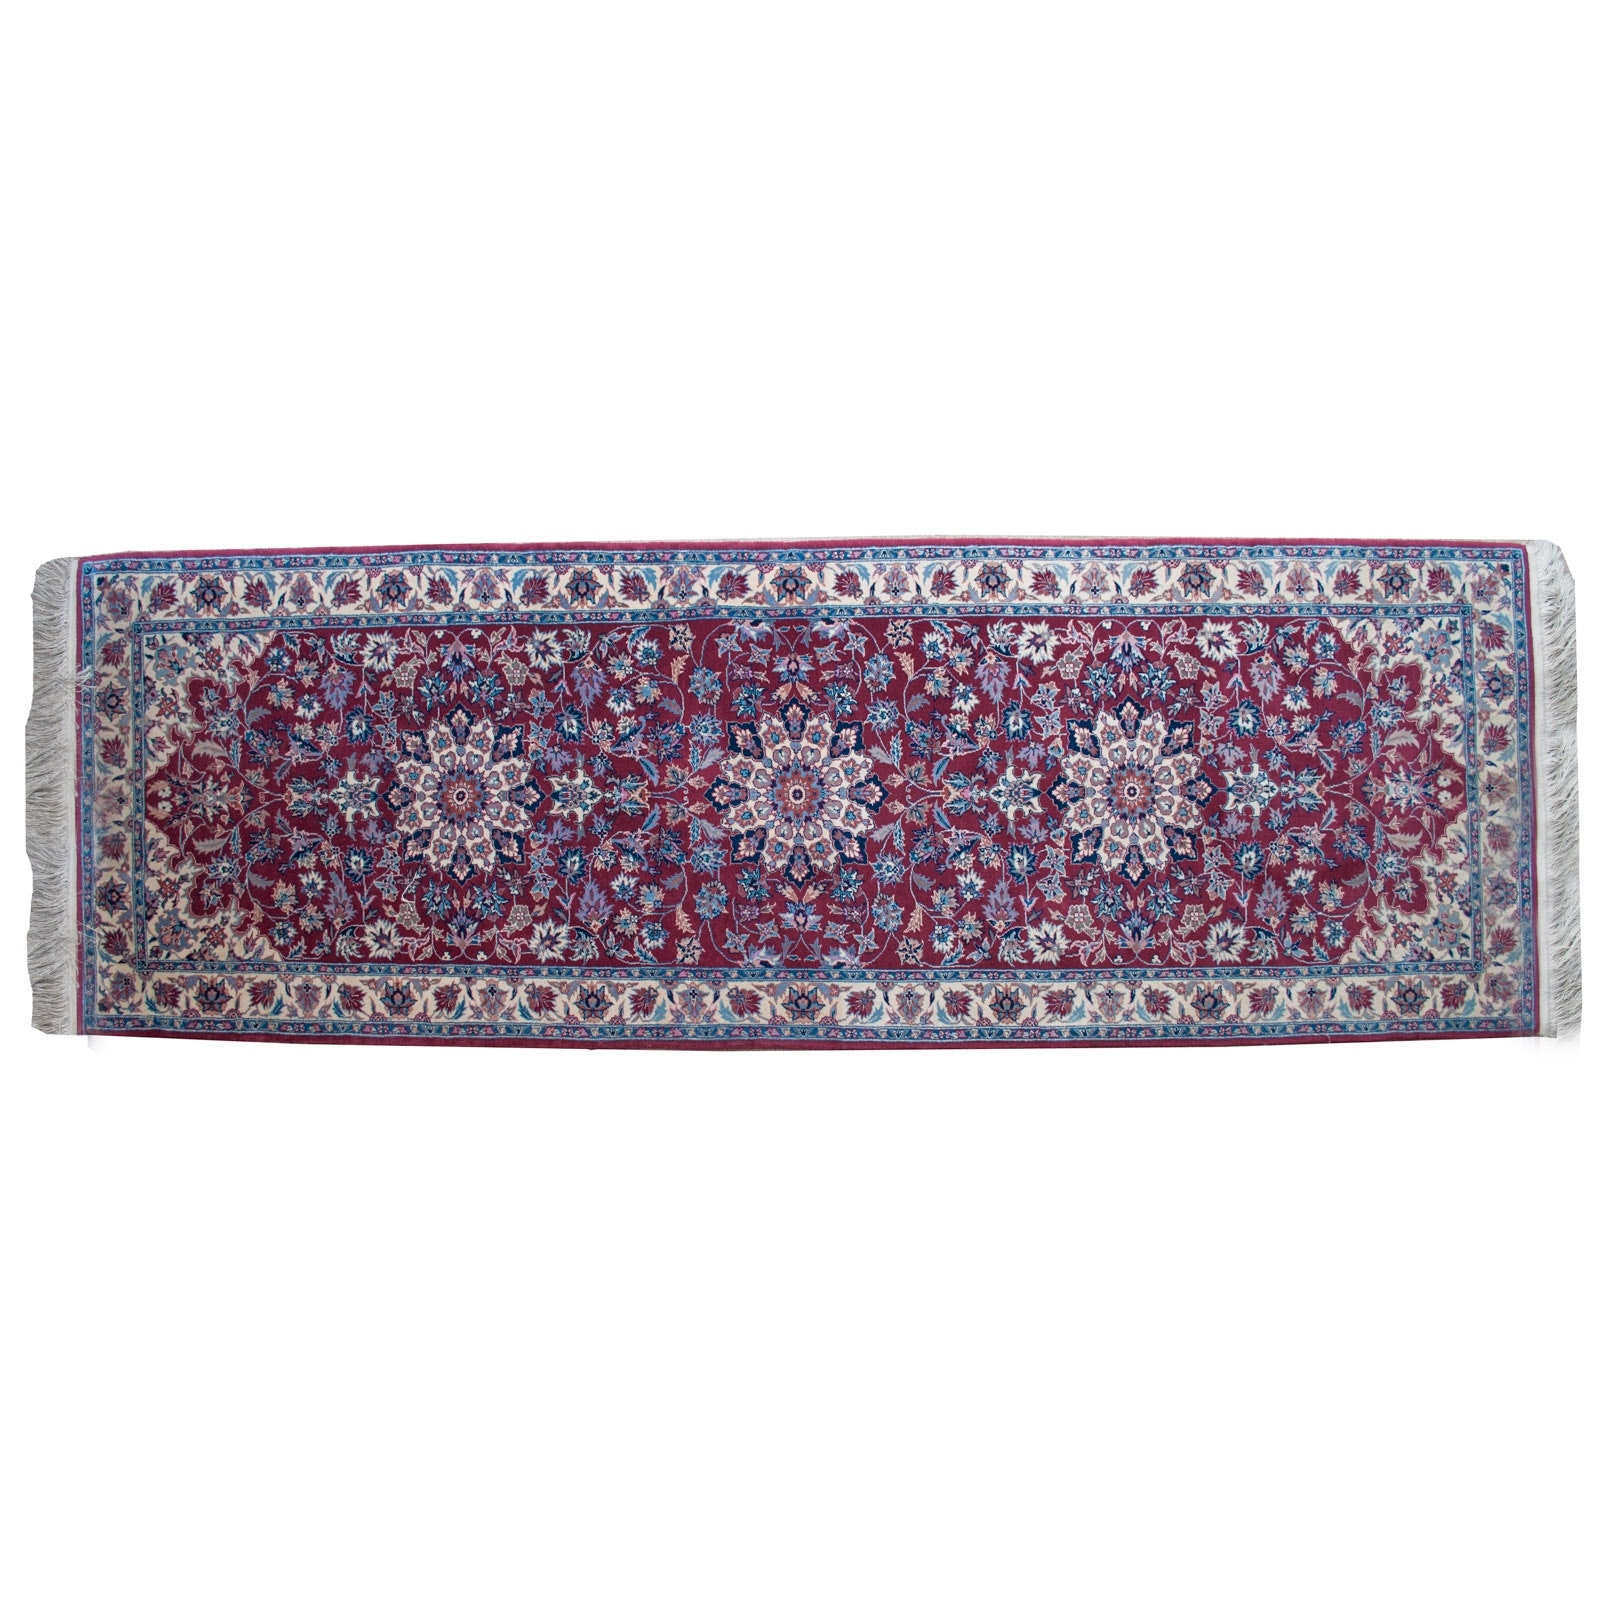 Hand-Knotted Persian Wool Runner Rug